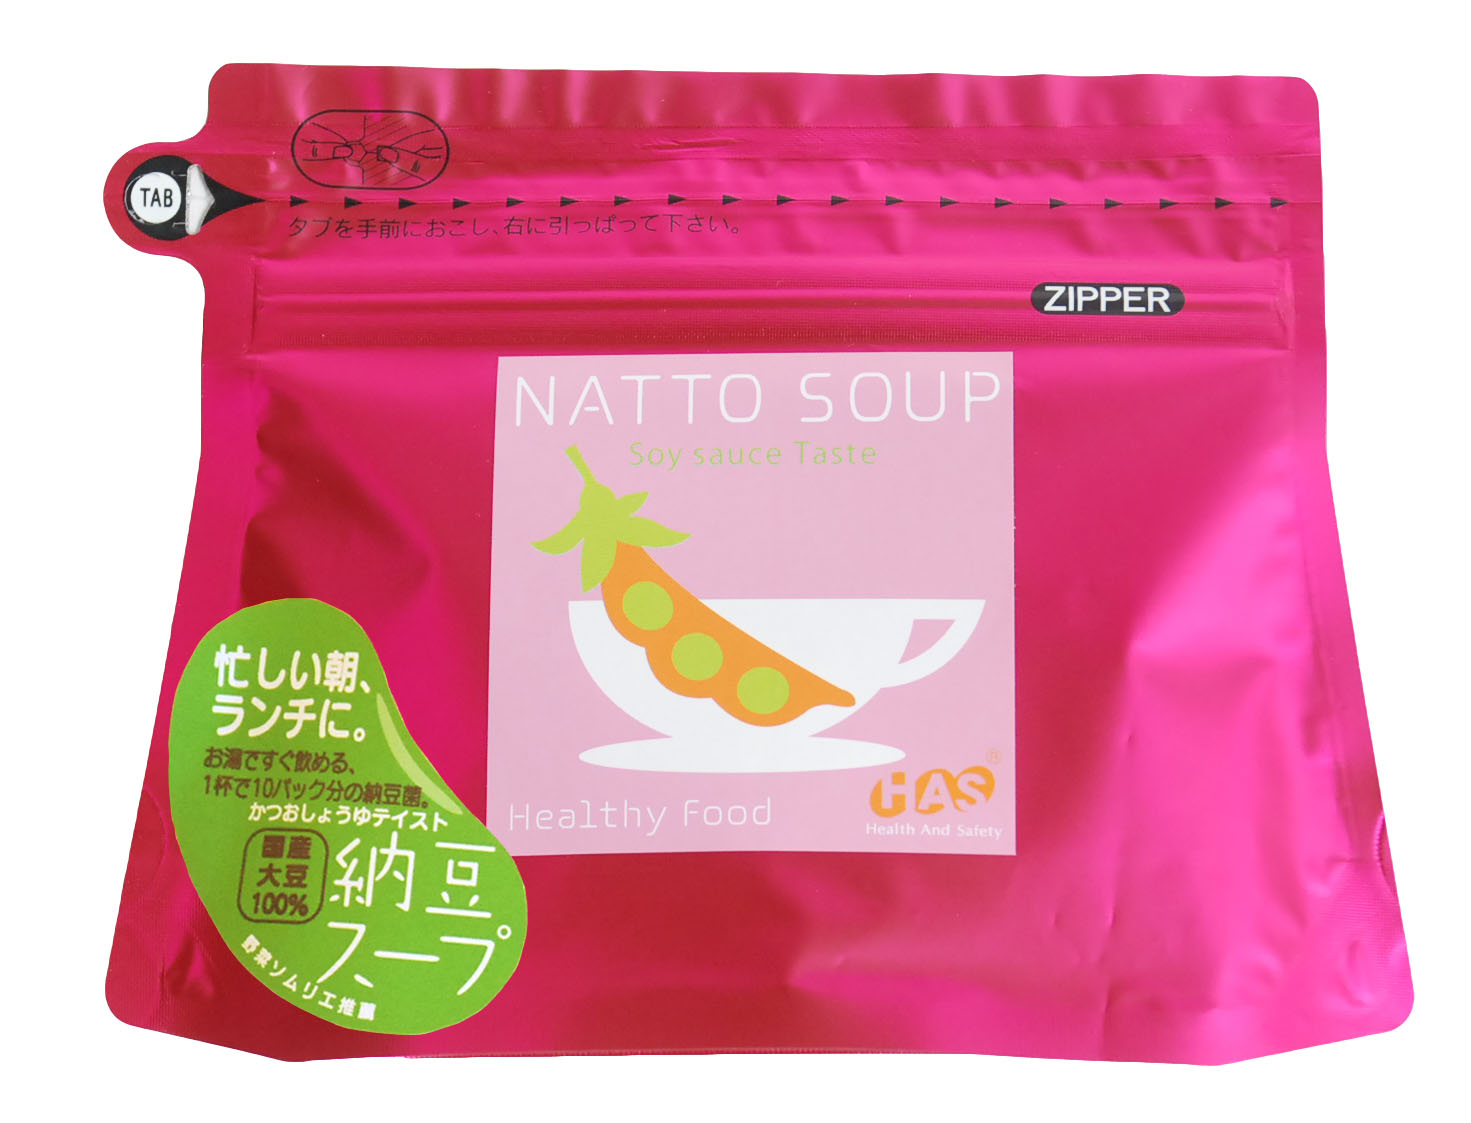 SQ natto soup 7 beauty and diet food nutrition. Bacillus subtilis natto, natto, natto kinase (nattokinase), soy isoflavones, and dietary fiber which contains healthy soup. And chill and swelling in the mouth with a popular health food (supplement / suppl